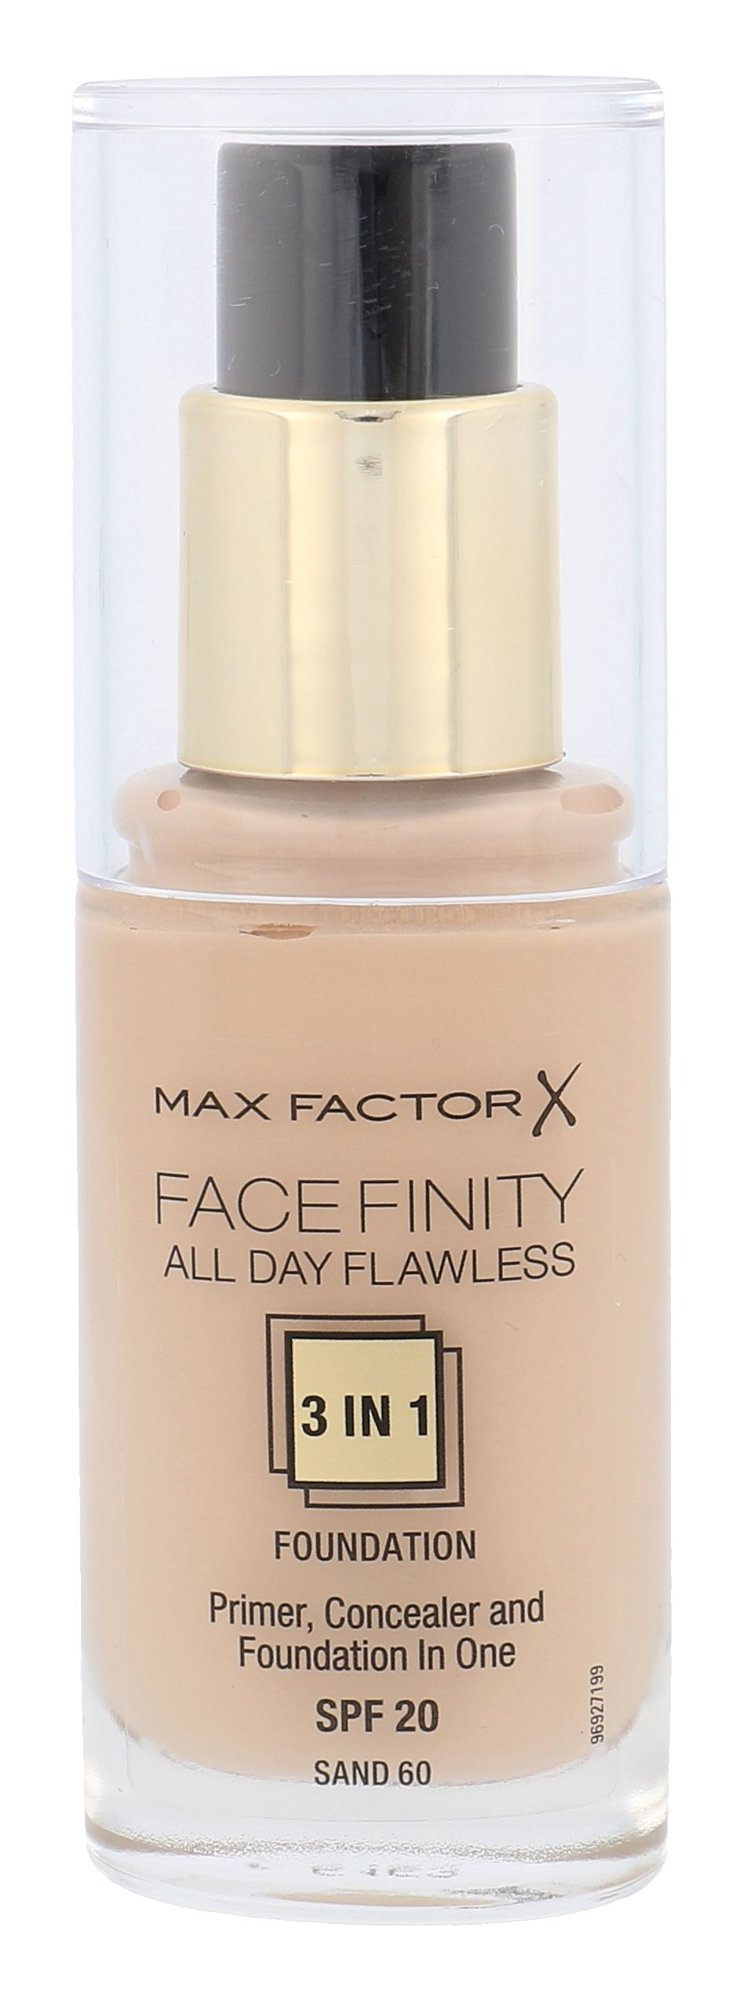 Max Factor Facefinity Makeup 30ml 60 Sand